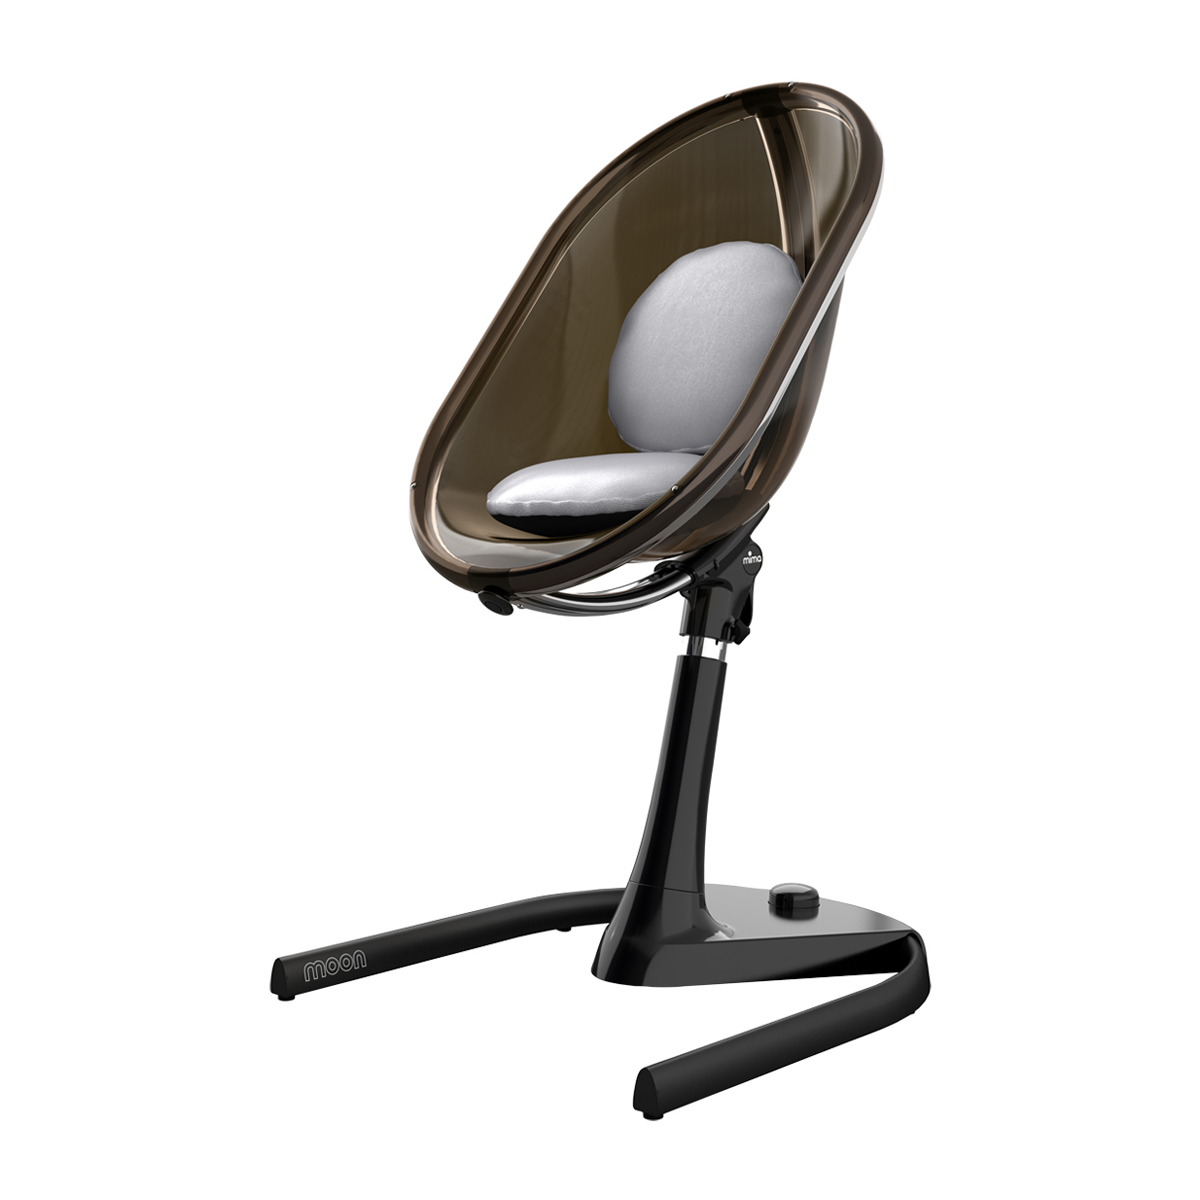 Mima Moon High Chair Mima Moon 2g 3 In 1 High Chair All Black Thetot